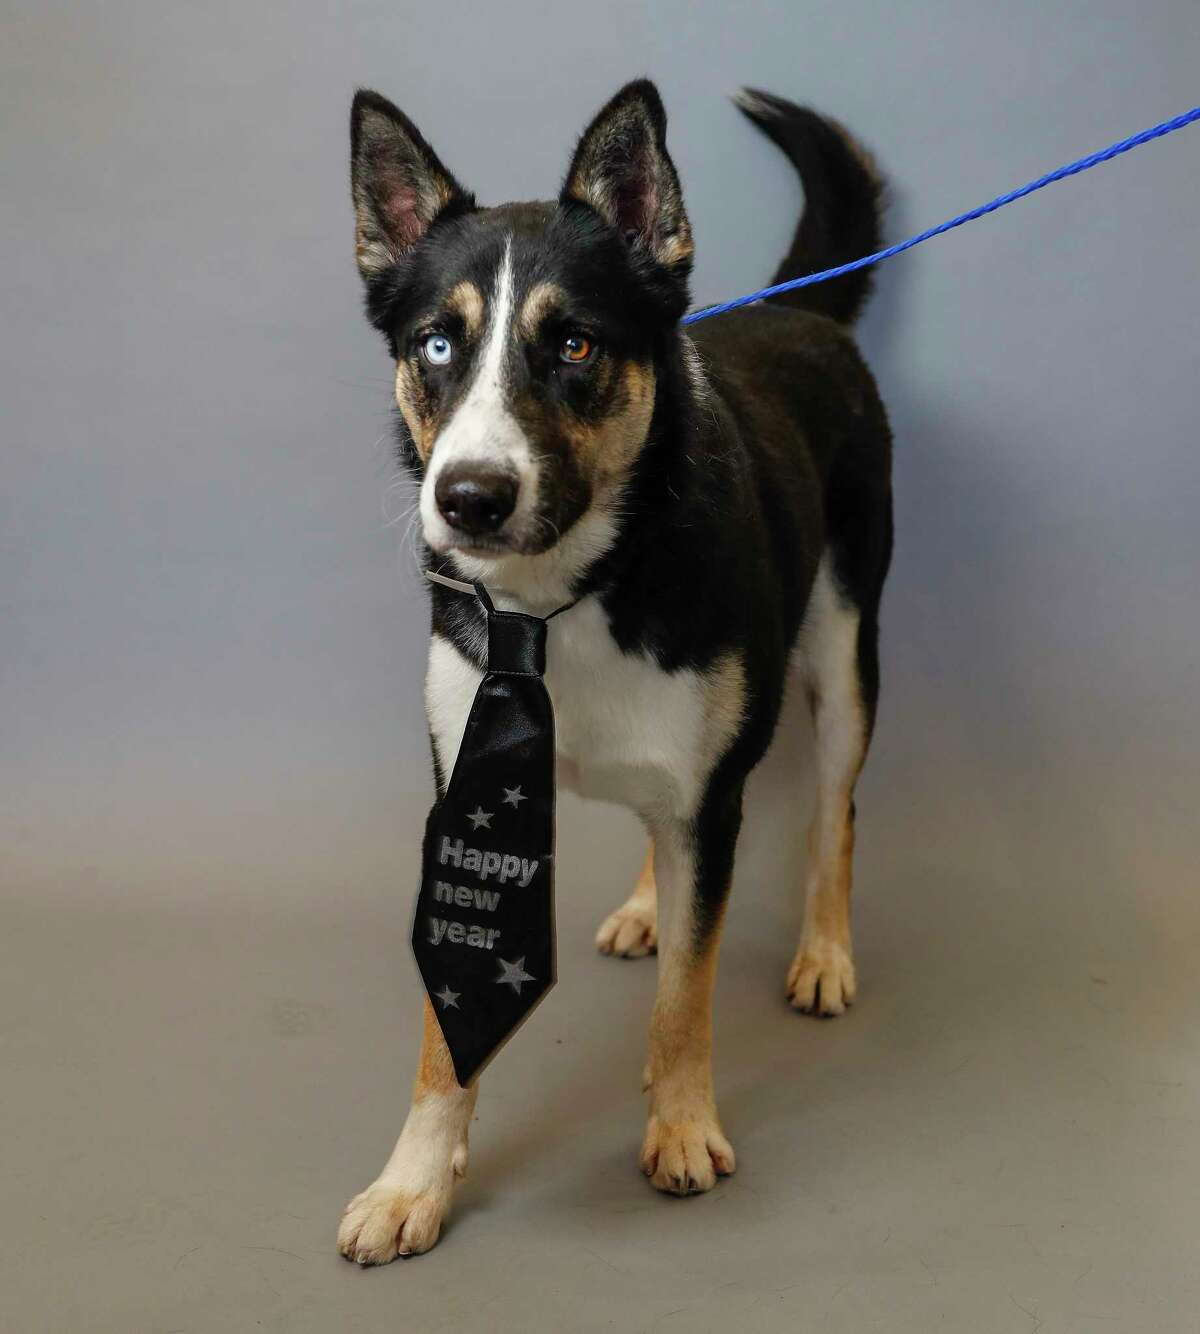 Diego (A1664241) is a 1-year-old, male, tricolor Collie/ Siberian Husky mix available for adoption from the BARC Animal Shelter. Photographed, Tuesday, Dec. 31, 2019, in Houston. Diego is a sweet dog, who walks great on a leash. Diego was adopted out in November and was found as a stray in December. BARC has reached out, but unable to reach the adopter, but no owner has come forward.